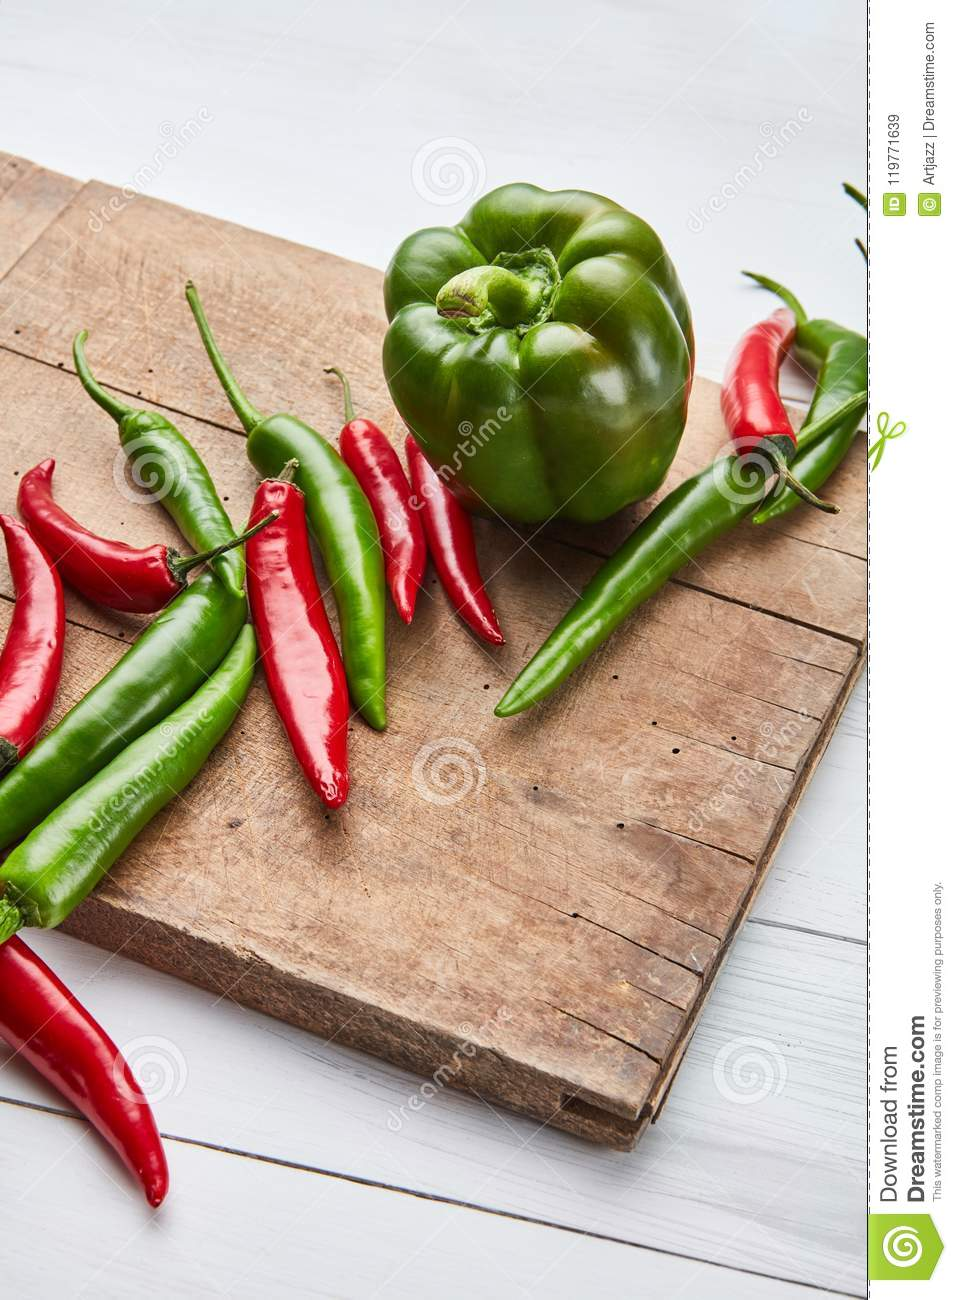 Colored hot chili peppers on a wooden board